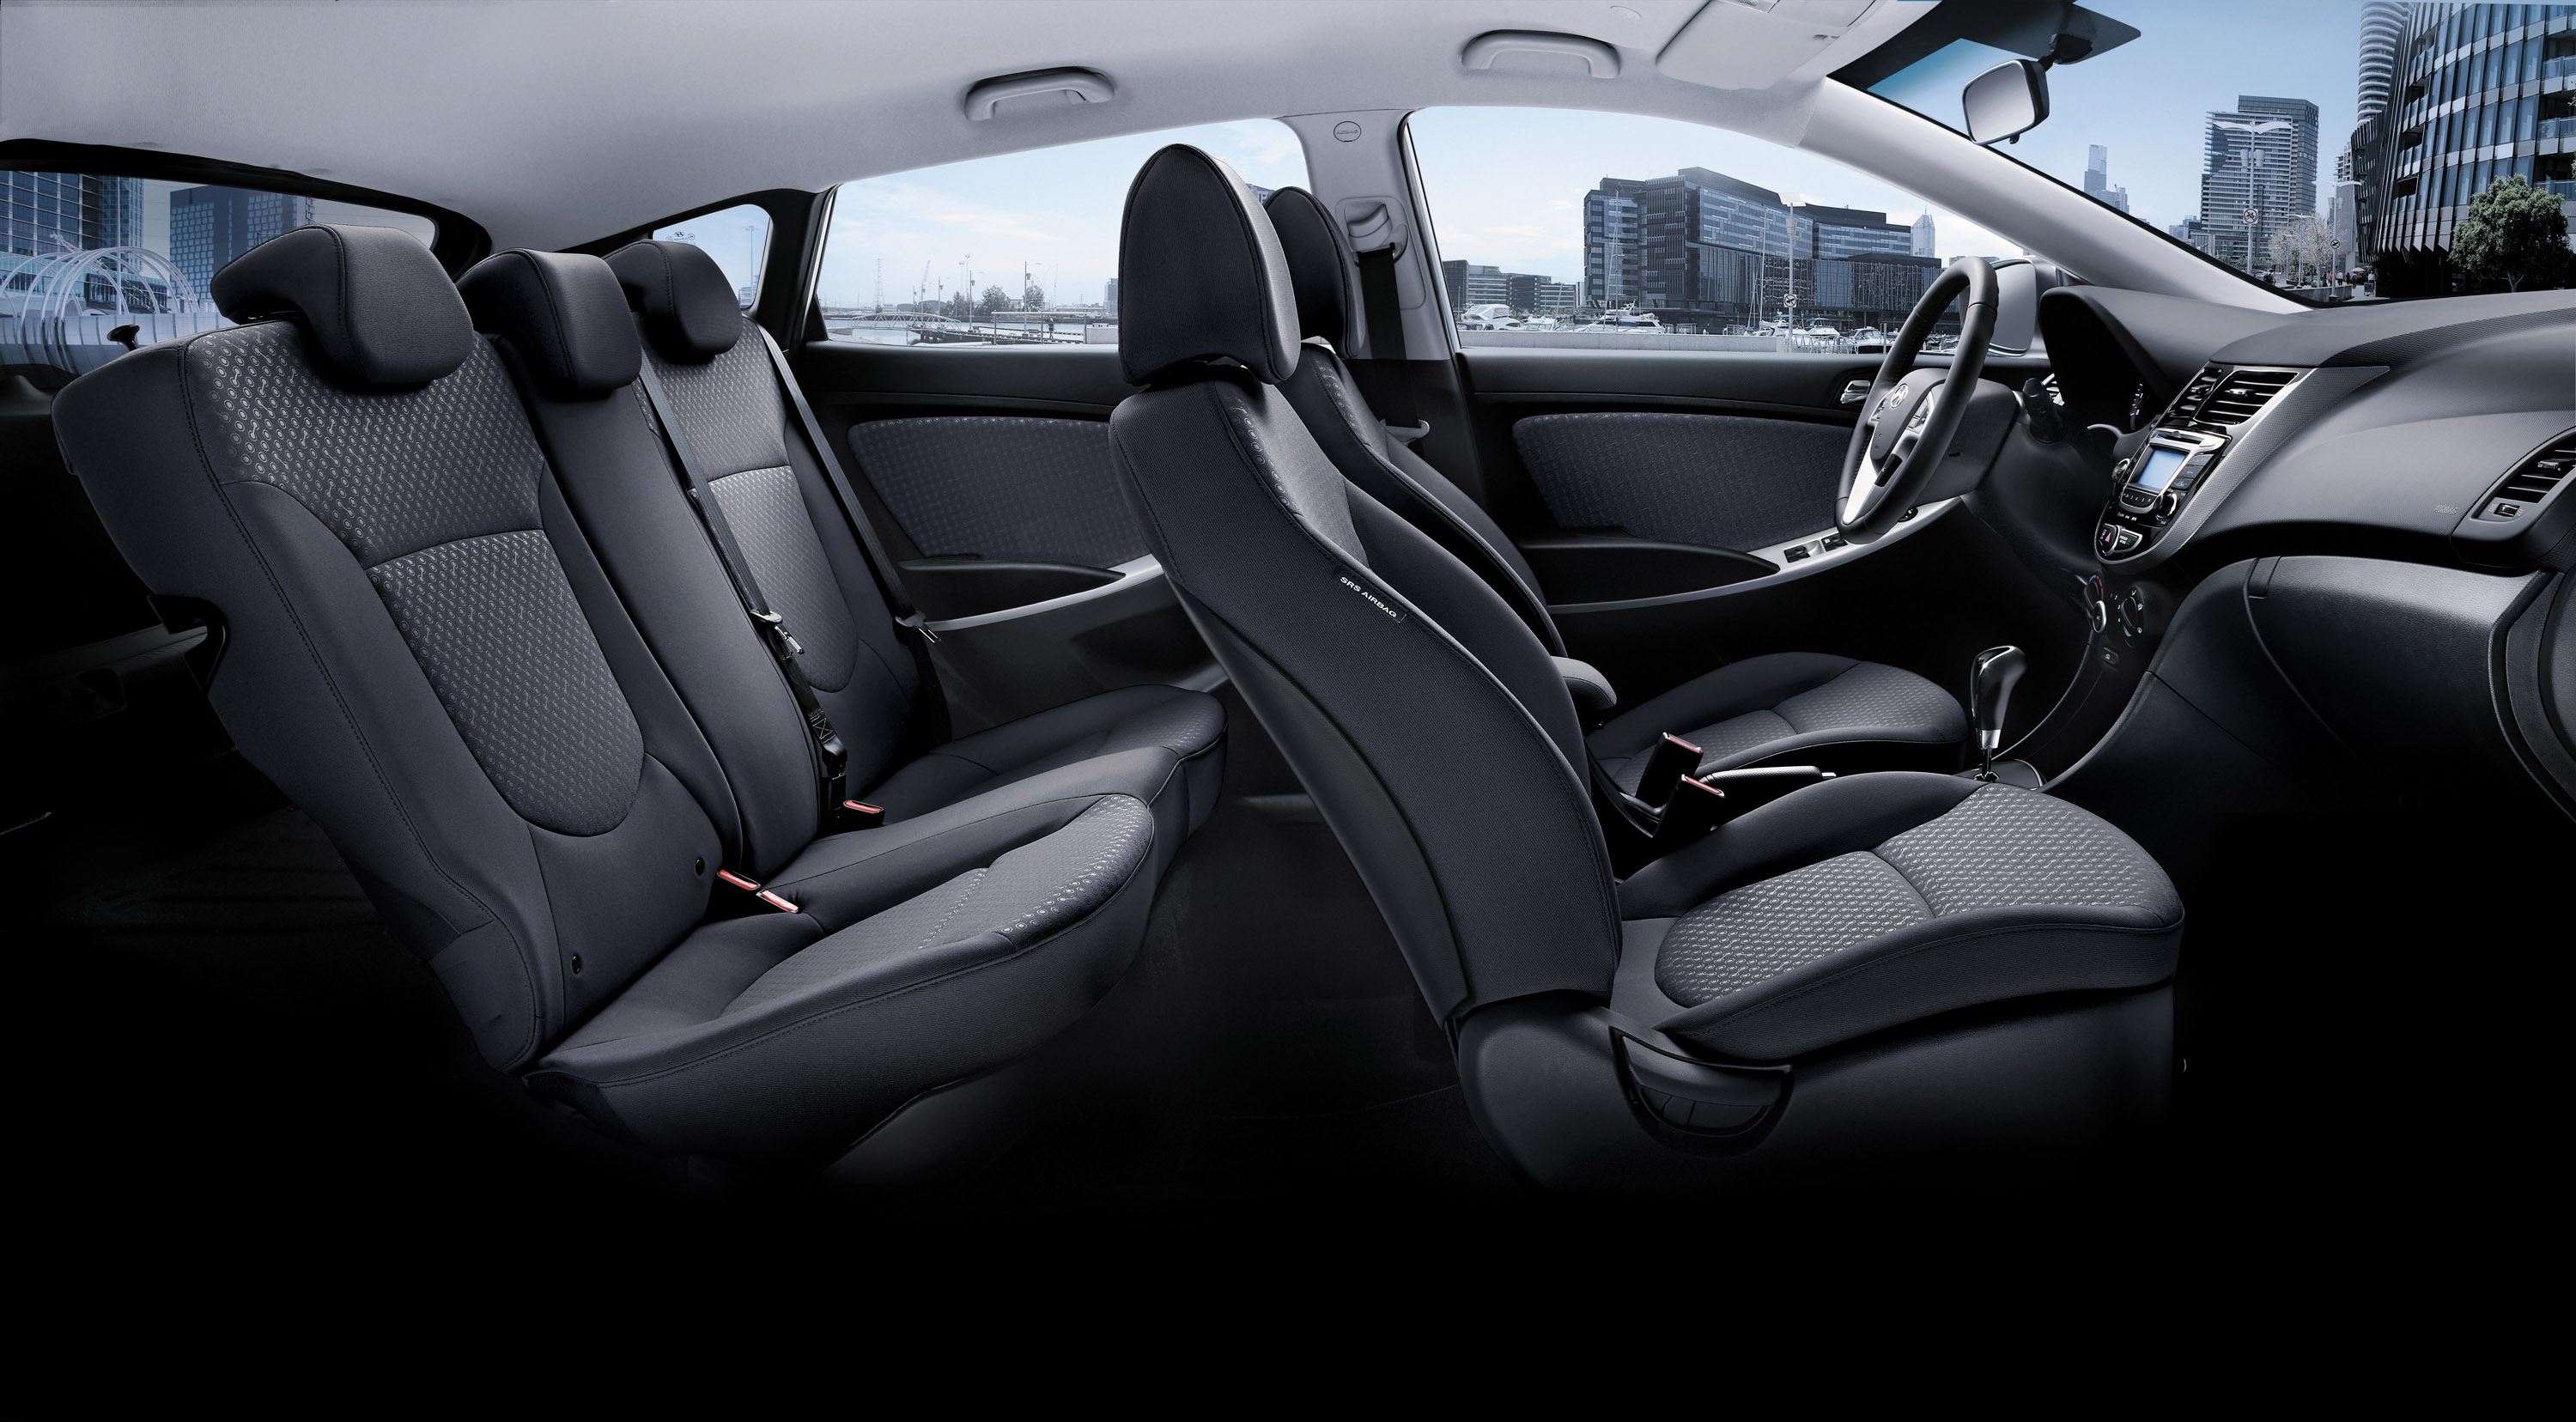 Research 2014                   HYUNDAI Accent pictures, prices and reviews